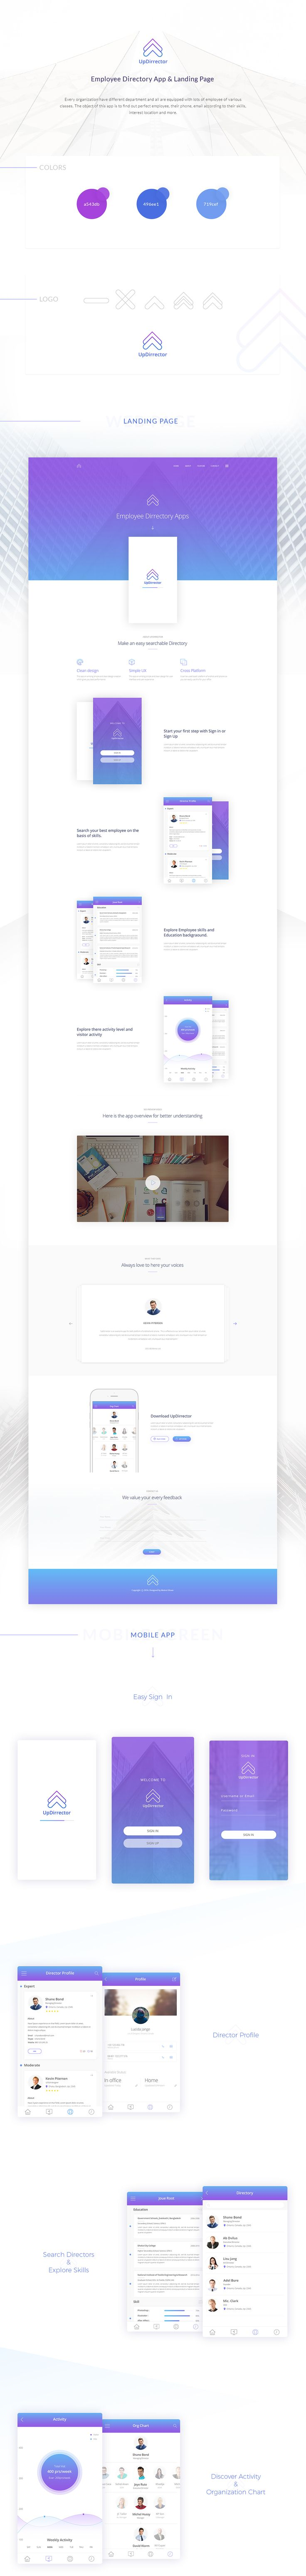 Hi,This is my new complete project. I have gone through from logo design to apps and landing page design. It is mainly an Employee Directory app. Have also a landing page. Hope you like my design and provide your valuable feed back. Thanks.